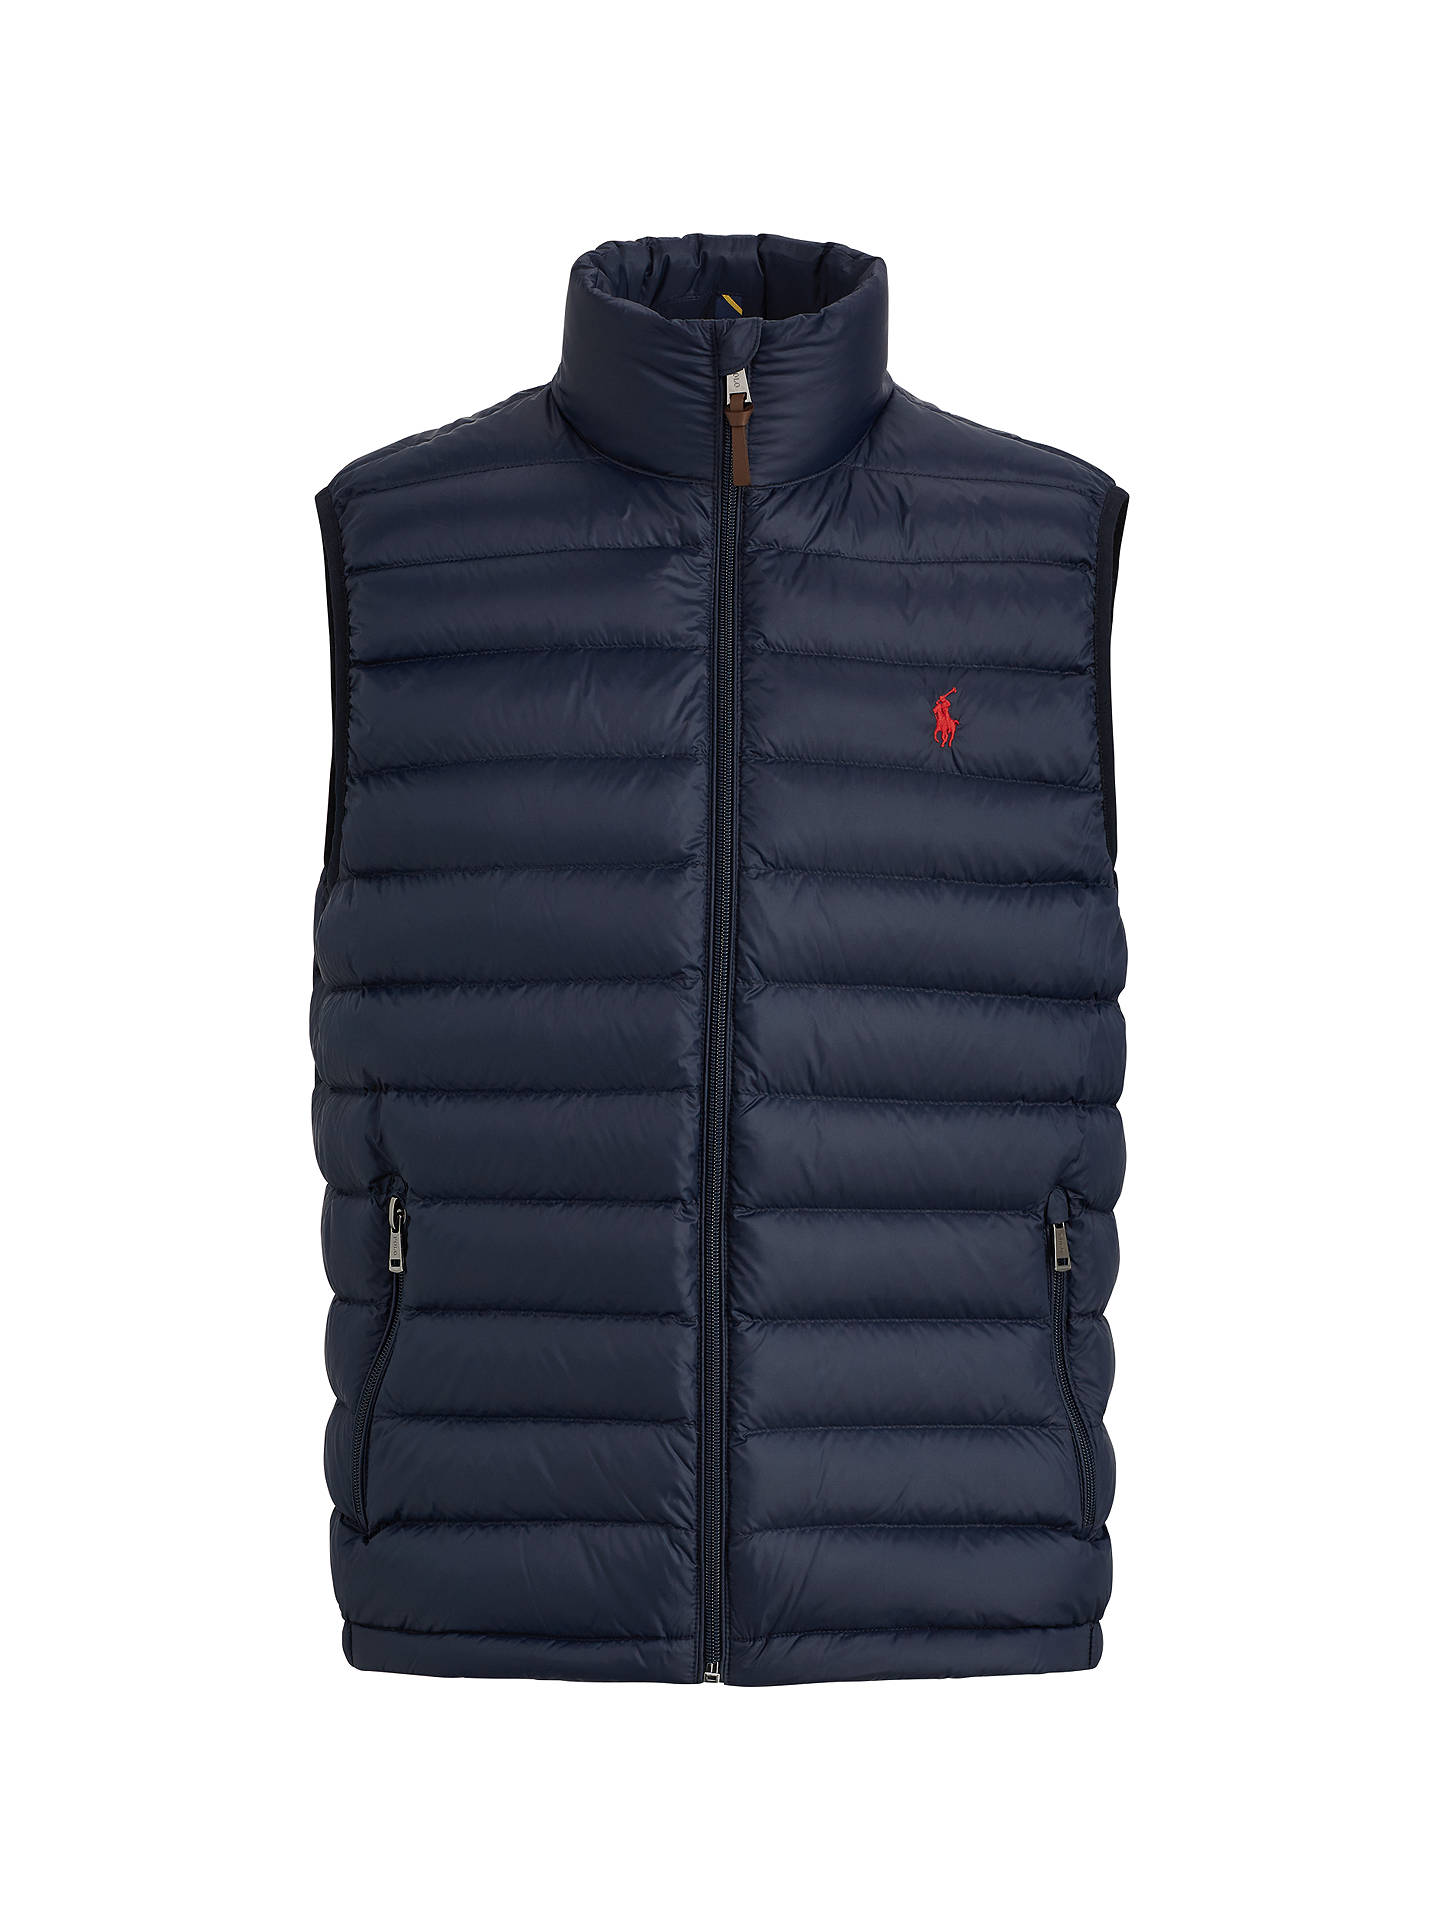 BuyPolo Ralph Lauren Bleeker Gilet, Aviator Navy, M Online at johnlewis.com